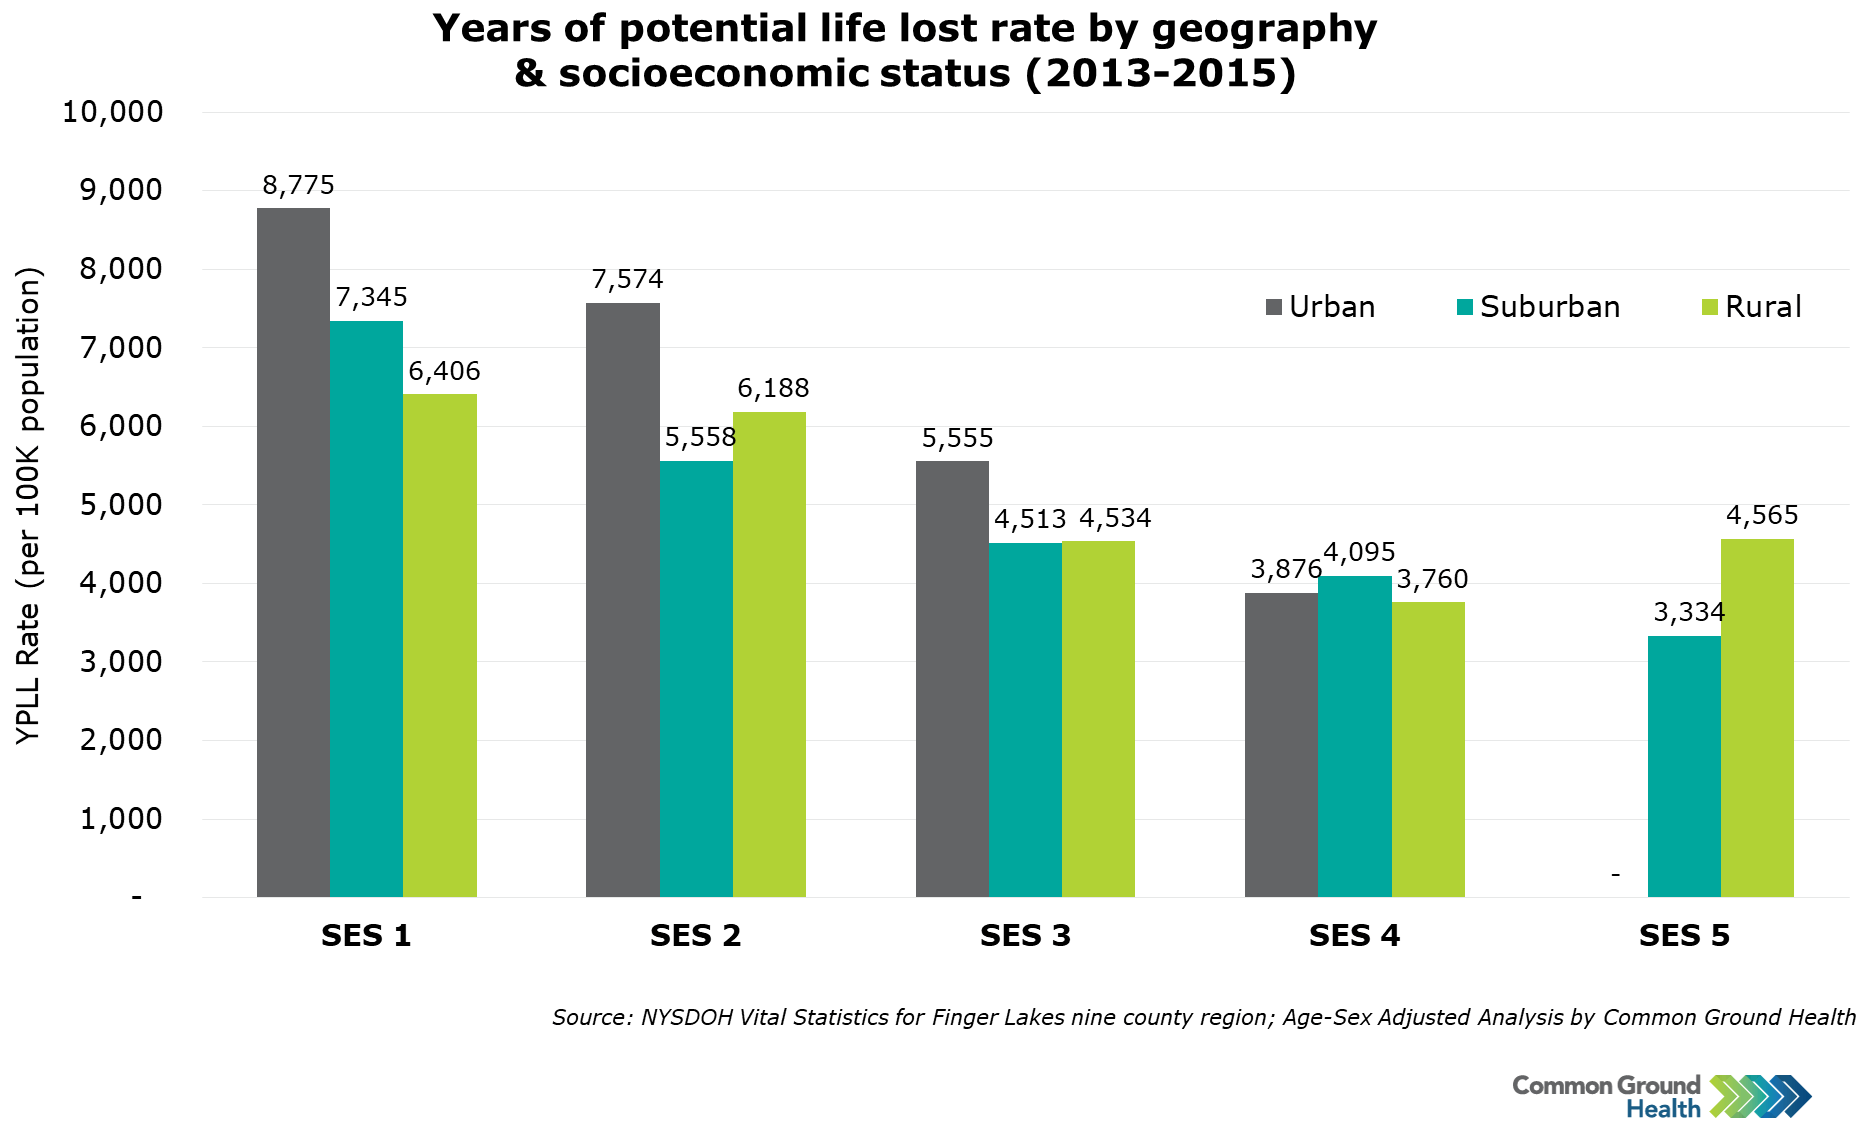 Years of Potential Life Lost Rate by Geography & Socioeconomic Status